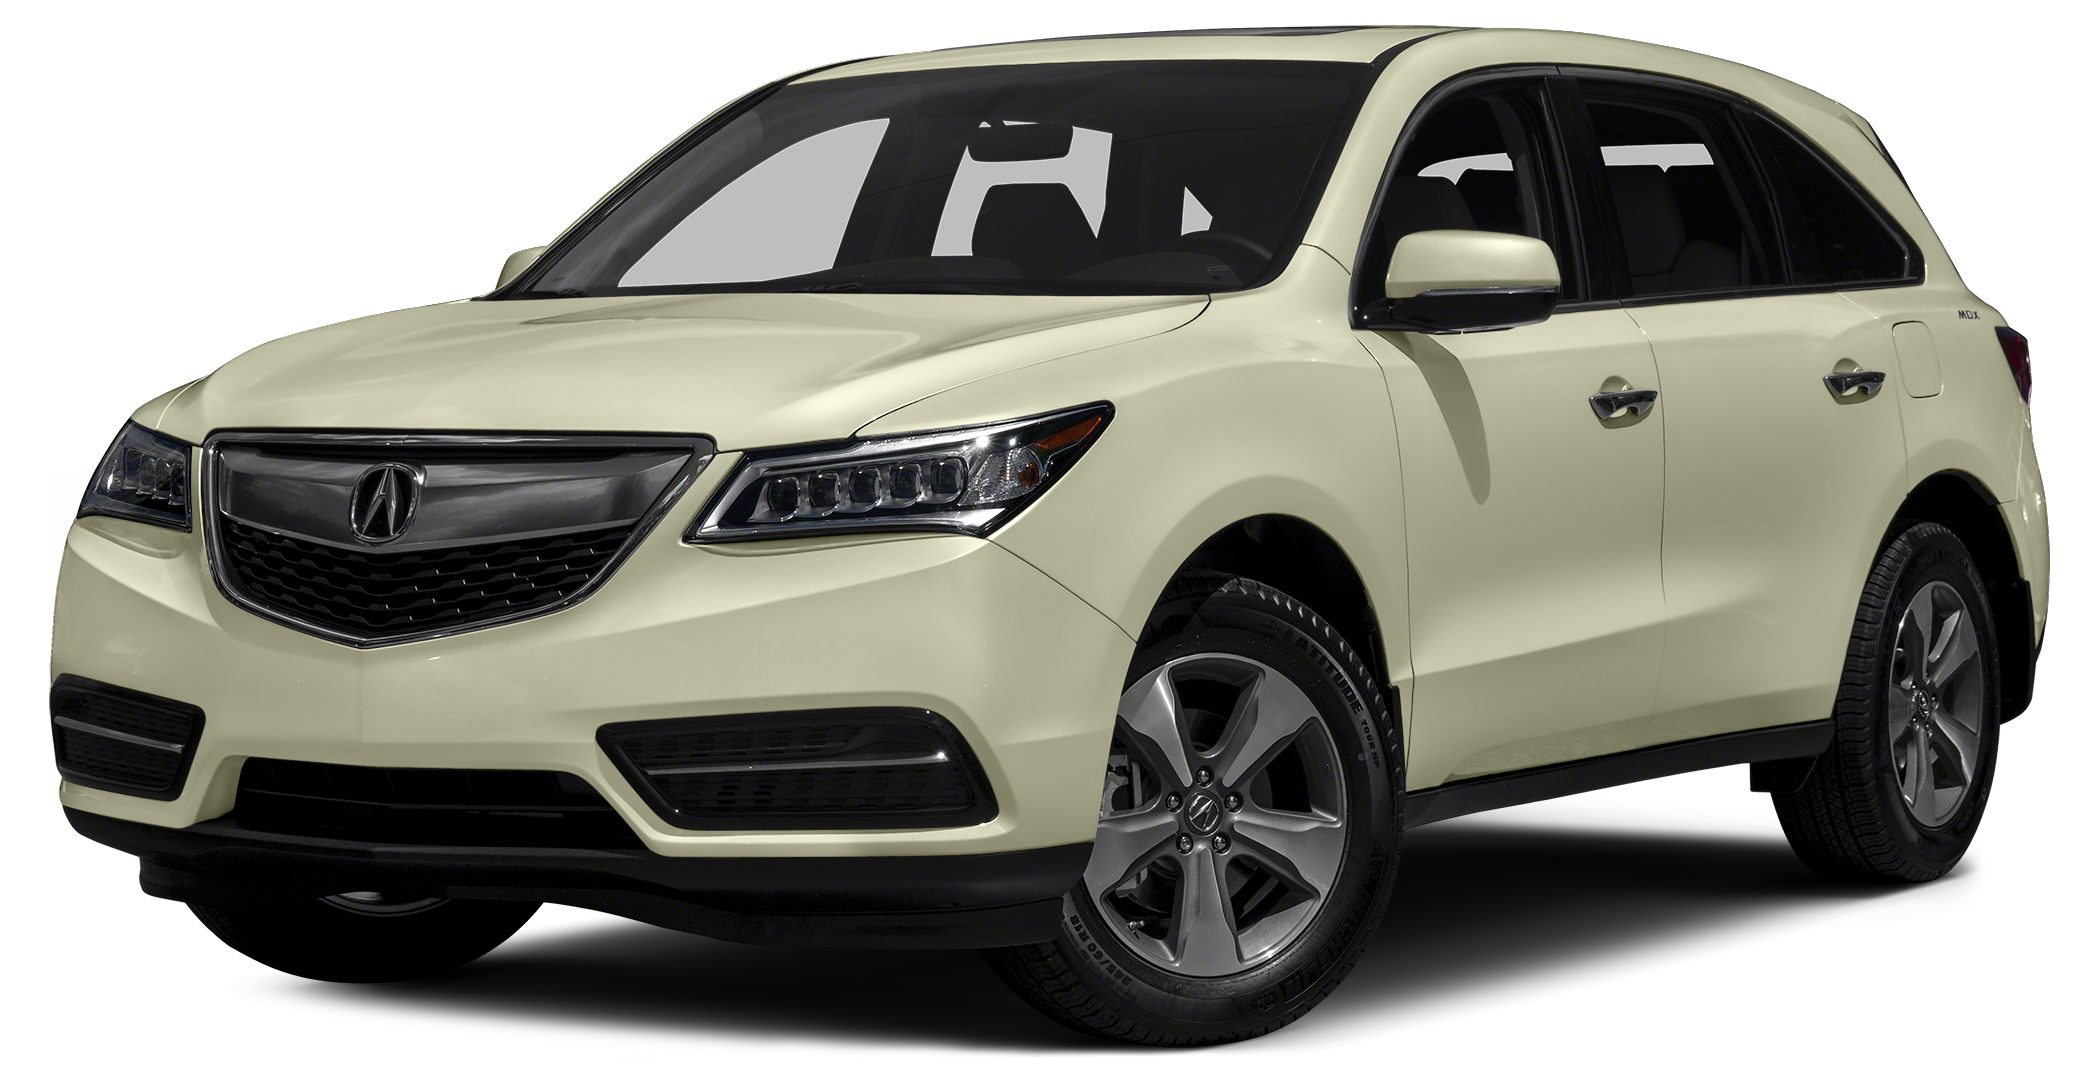 2016 Acura MDX 35 The Acura MDX is as refined as it is sophisticated It is adorned with gorgeous